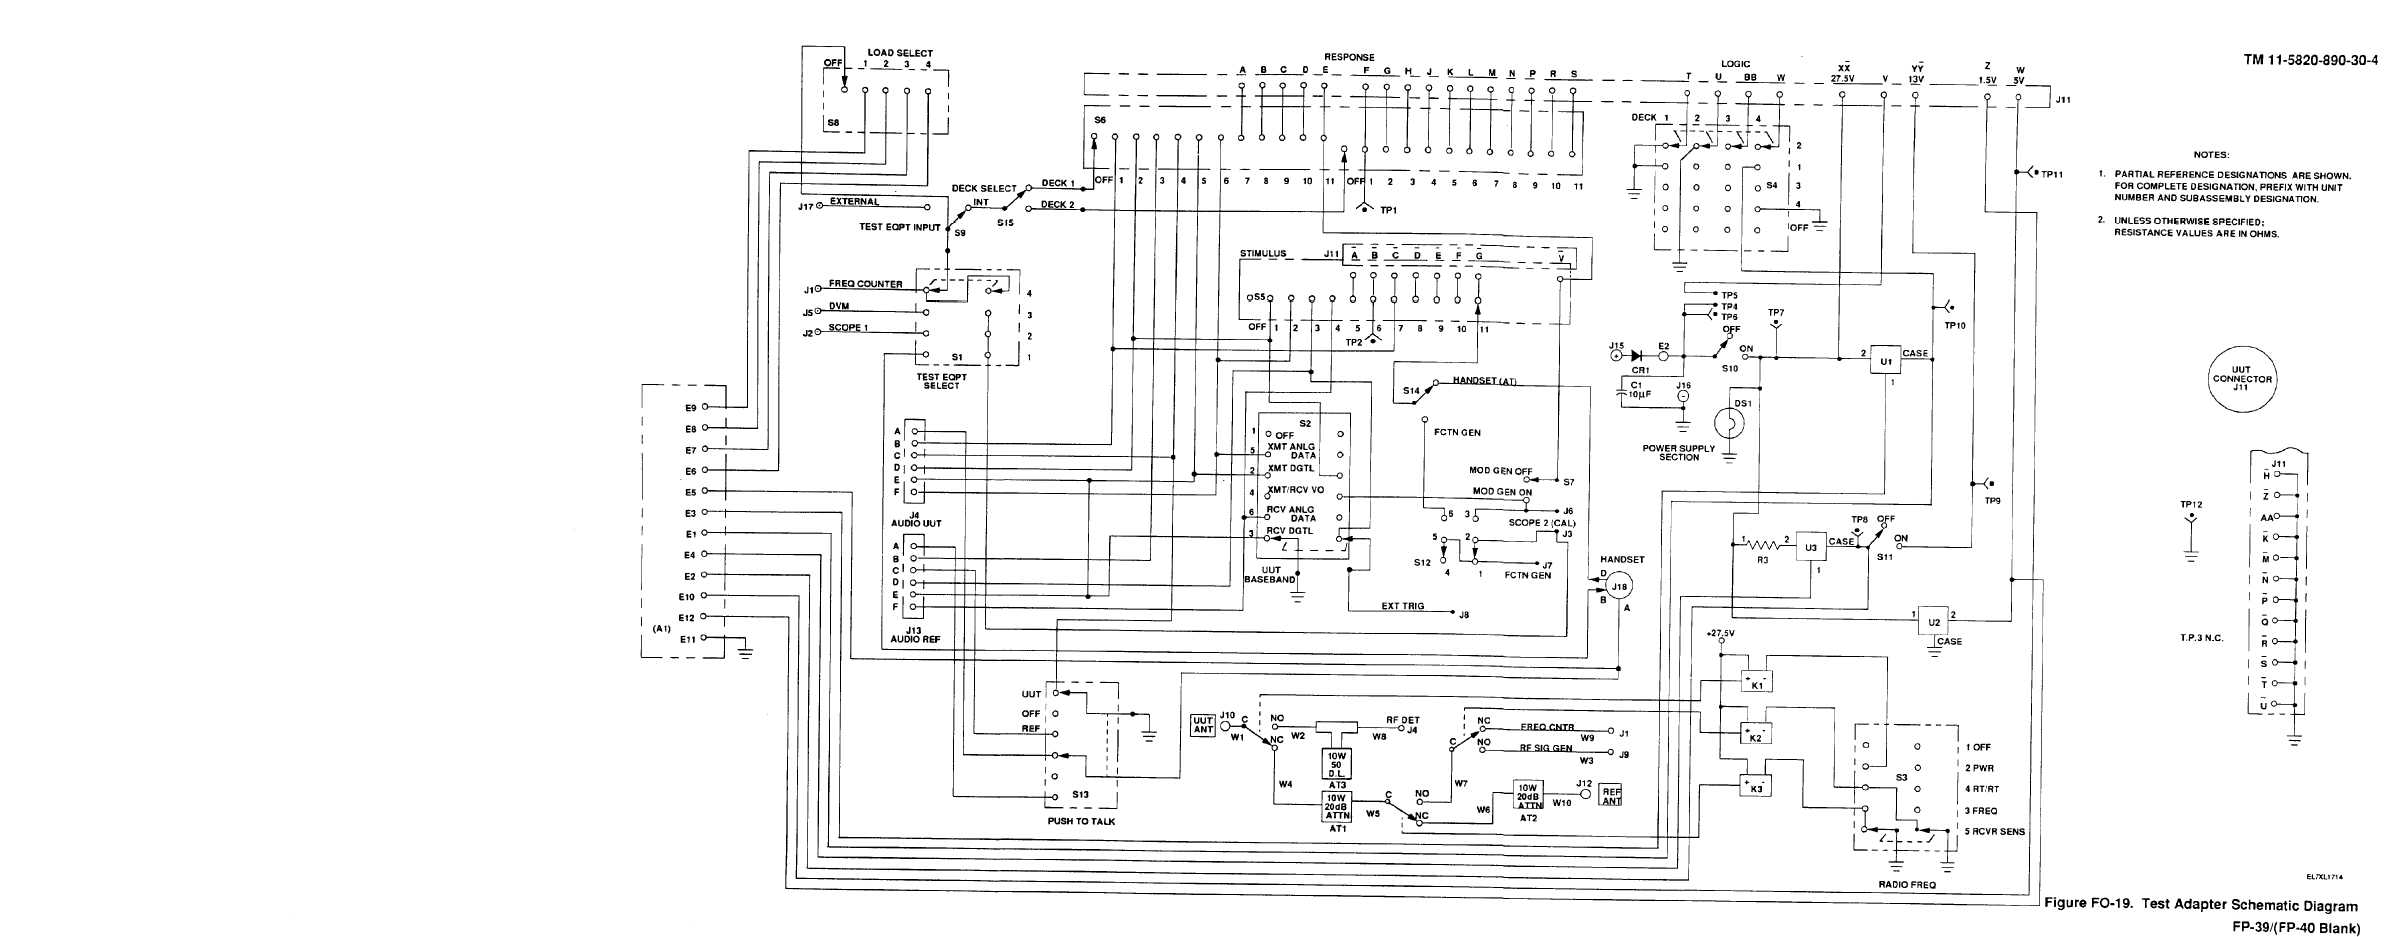 FIGURE FO-19. TEST ADAPTER SCHEMATIC DIAGRAM